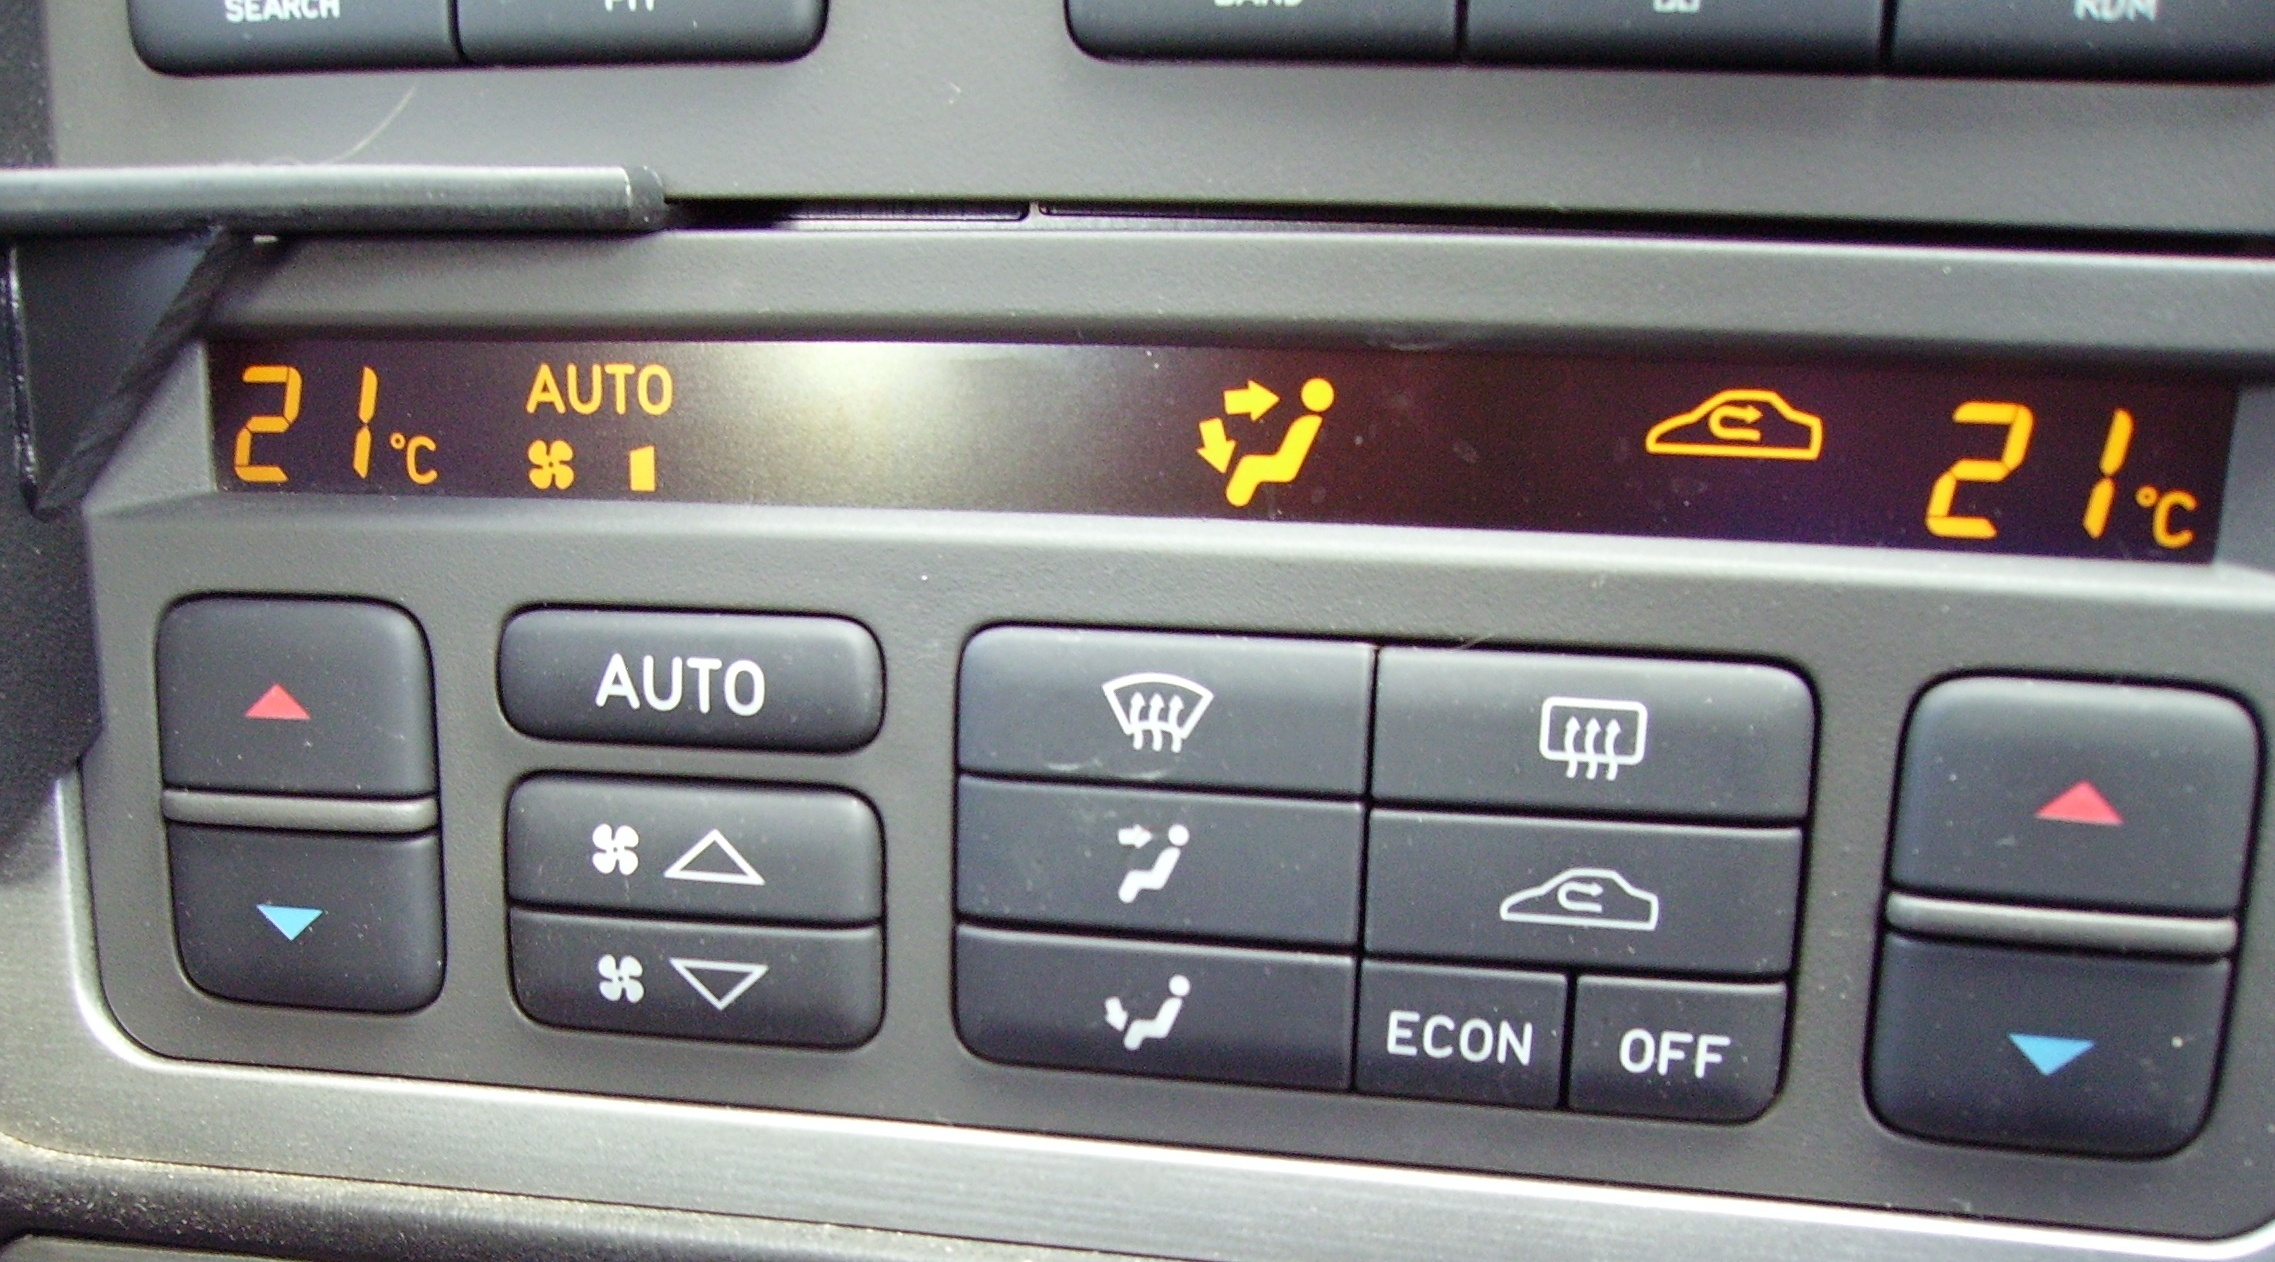 Troubleshoot Automatic Climate Control System - AUTOINTHEBOX